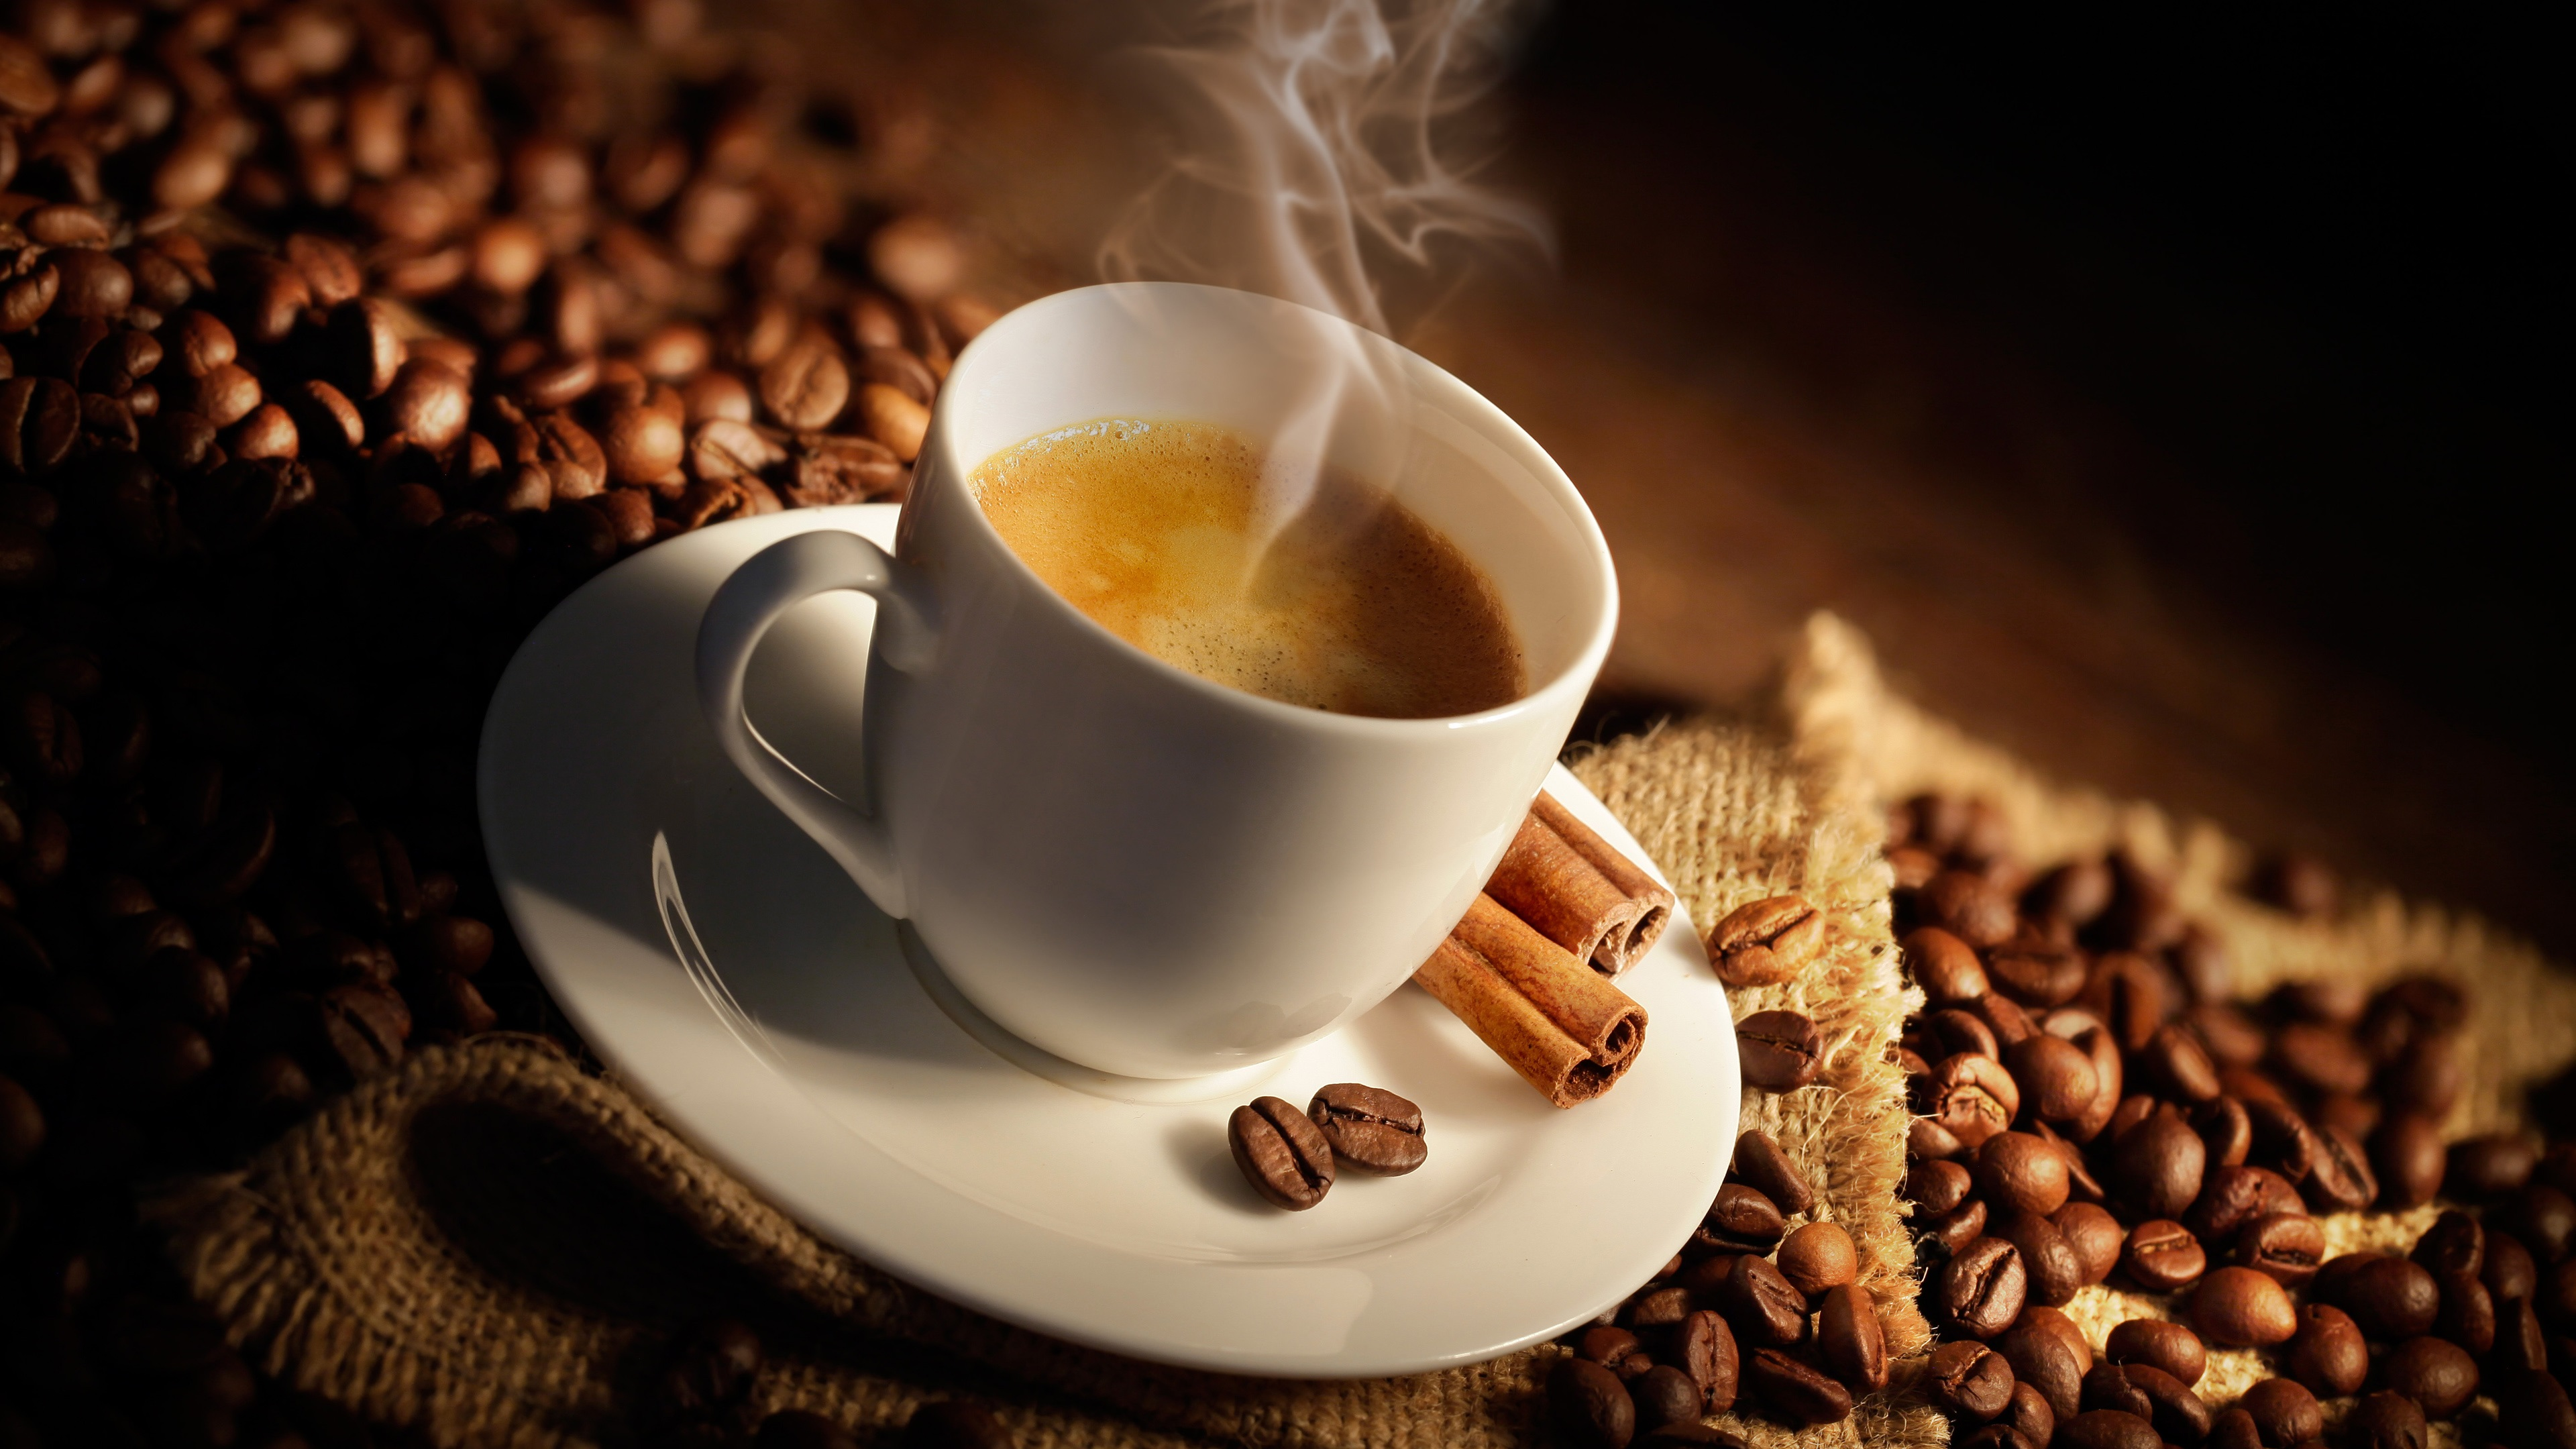 Wallpaper One Cup Coffee Steam Coffee Beans Cinnamon 3840x2160 Uhd 4k Picture Image